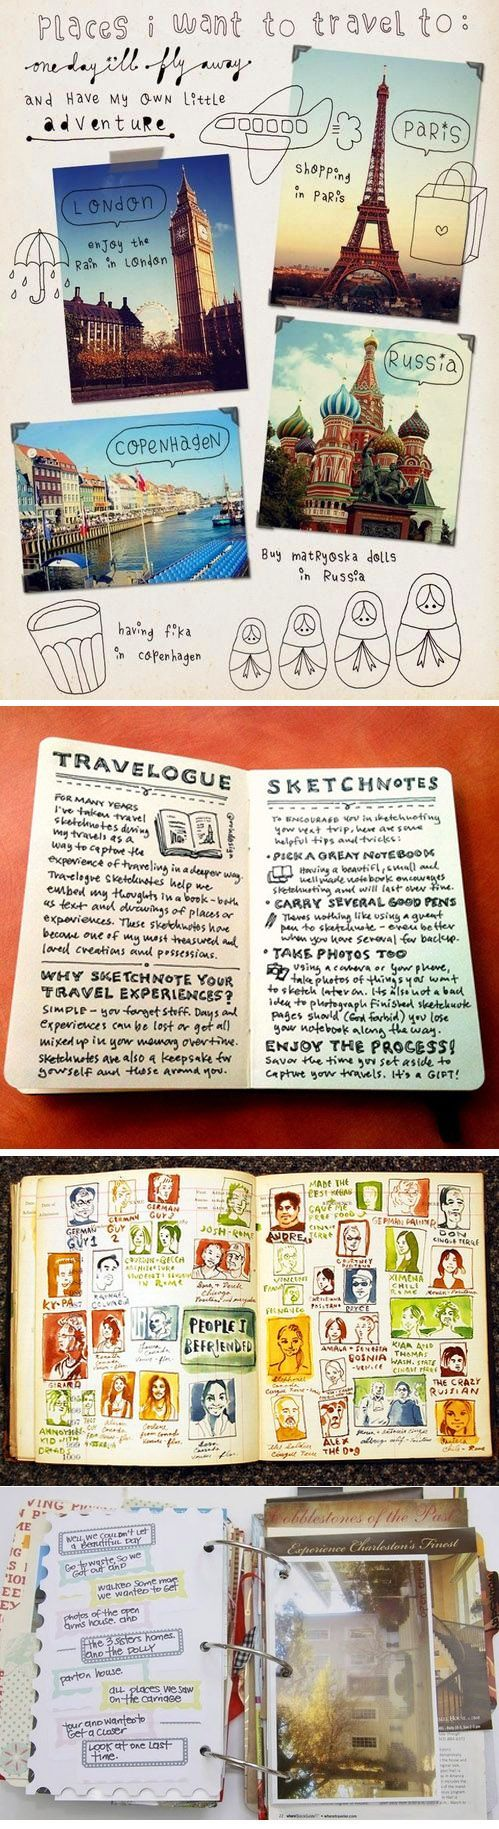 Travel Journal Idea. I LOVE LOVE LOVVVVEEEE this!!!!! This would be a great DIY project to do before I go on big long trips to different countries! I just love journaling and of course the obvious. .. Traveling:)